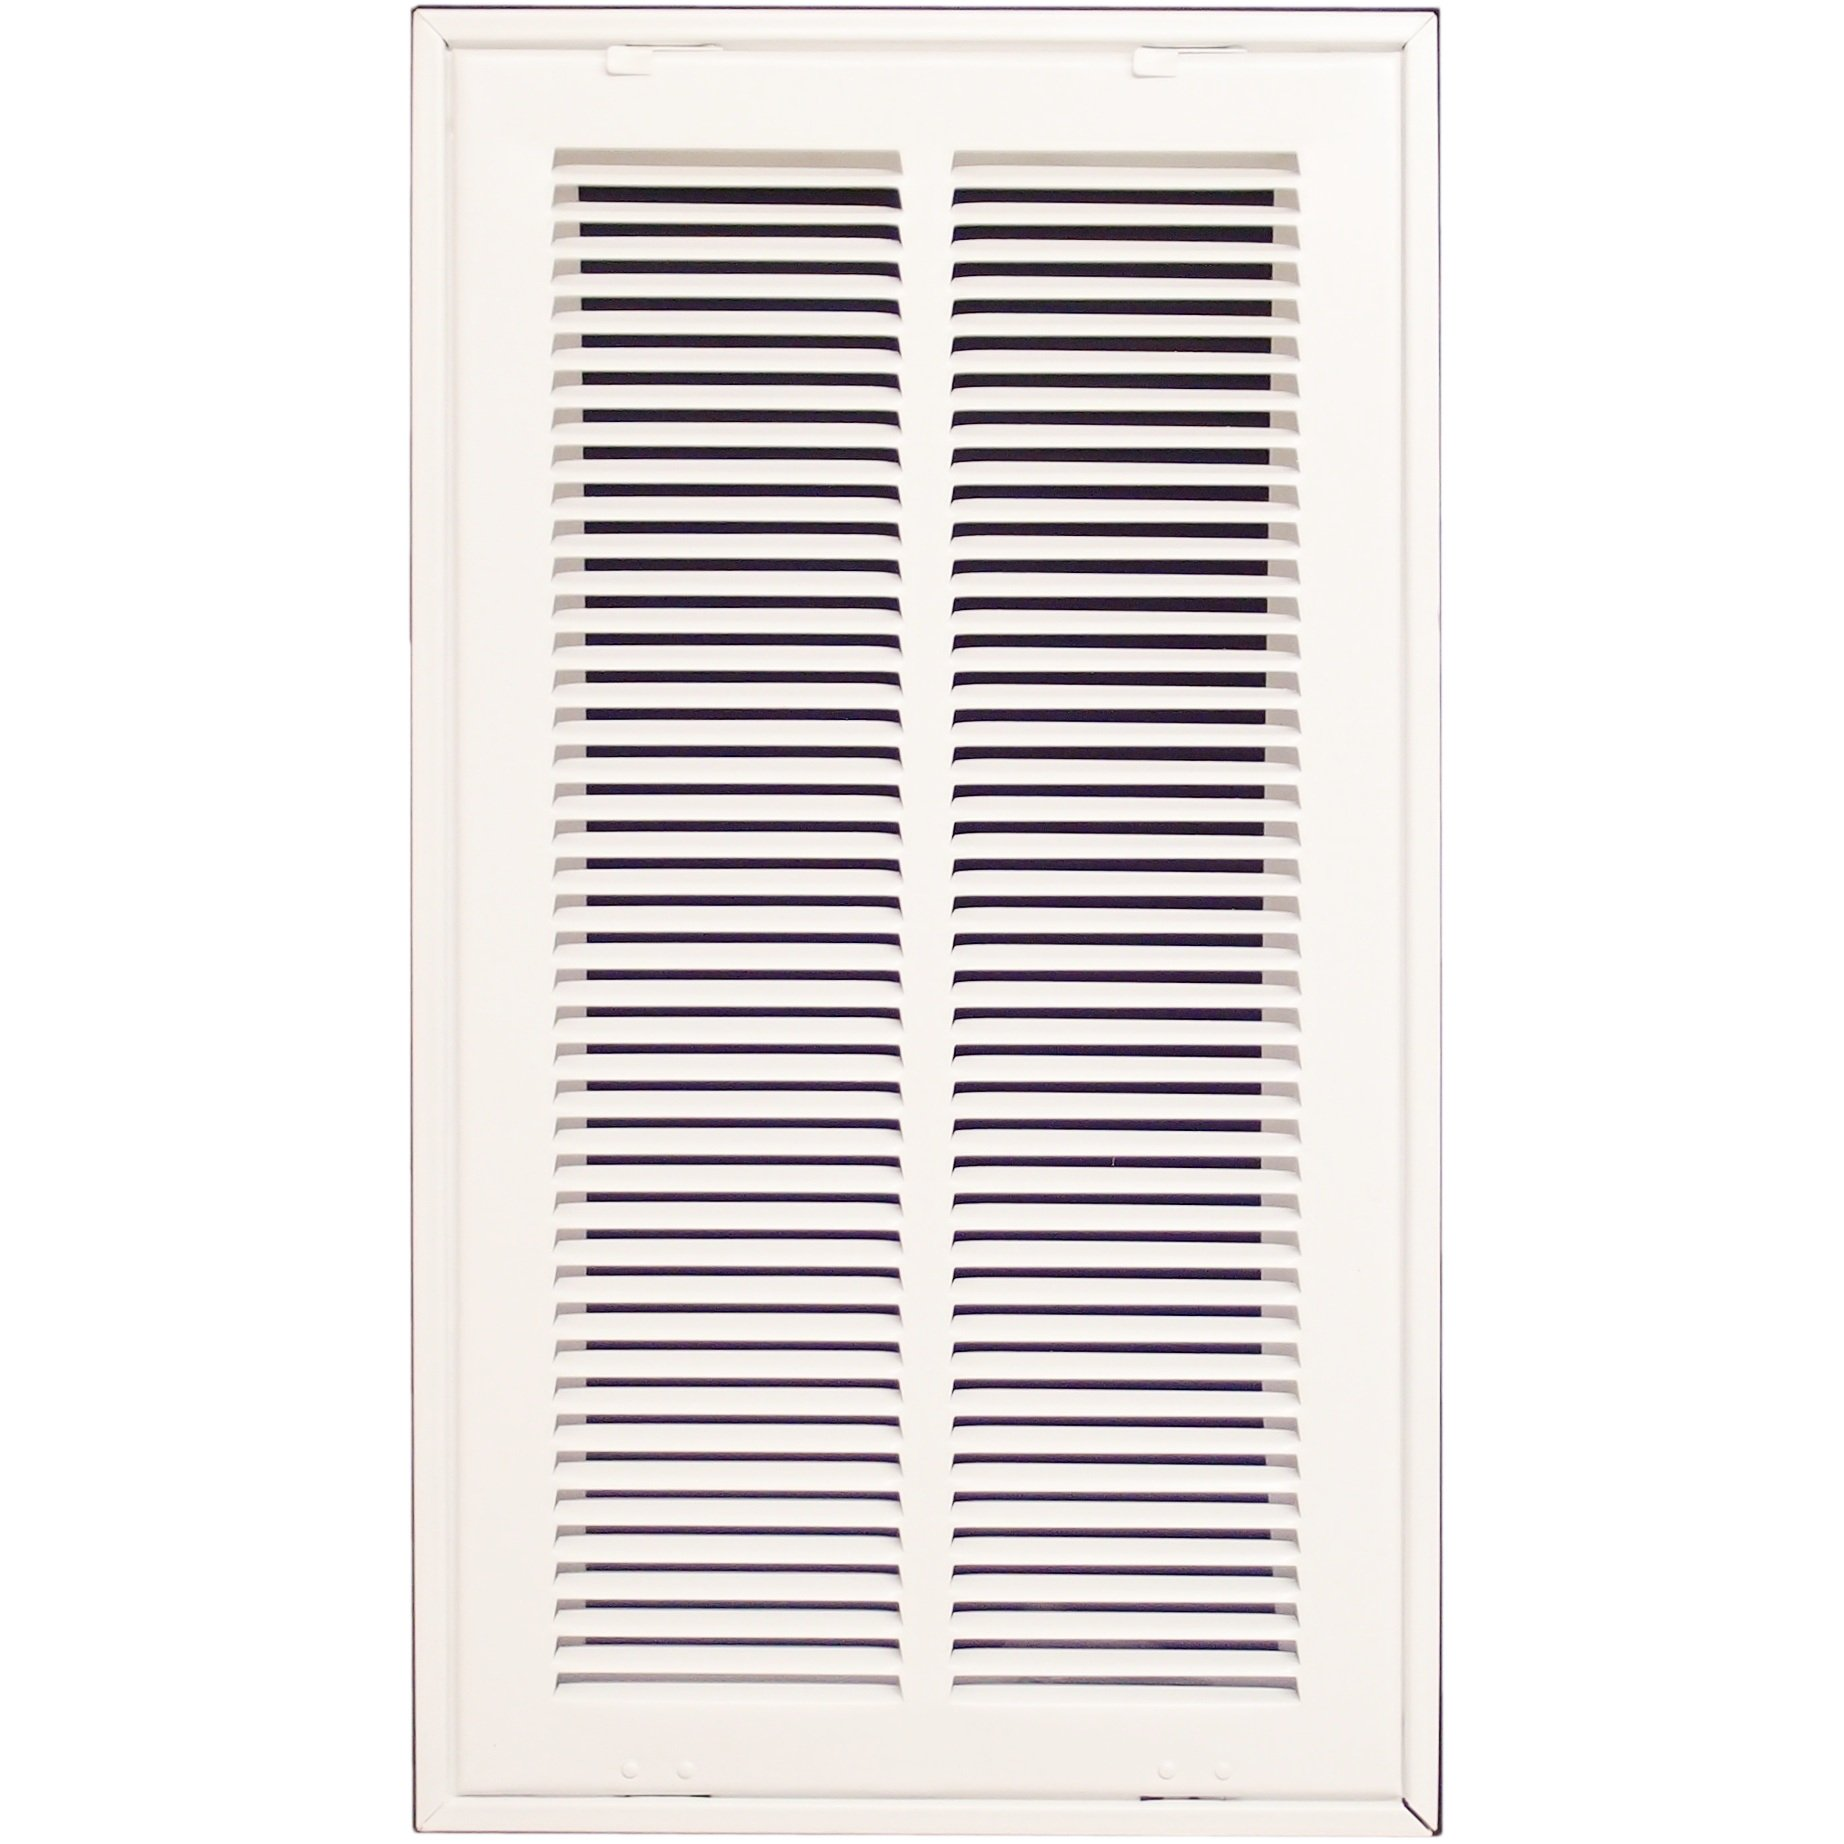 10'' X 20 Steel Return Air Filter Grille for 1'' Filter - Fixed Hinged - ceiling Recommended - HVAC DUCT COVER - Flat Stamped Face - White [Outer Dimensions: 12.5''w X 22.5''h]